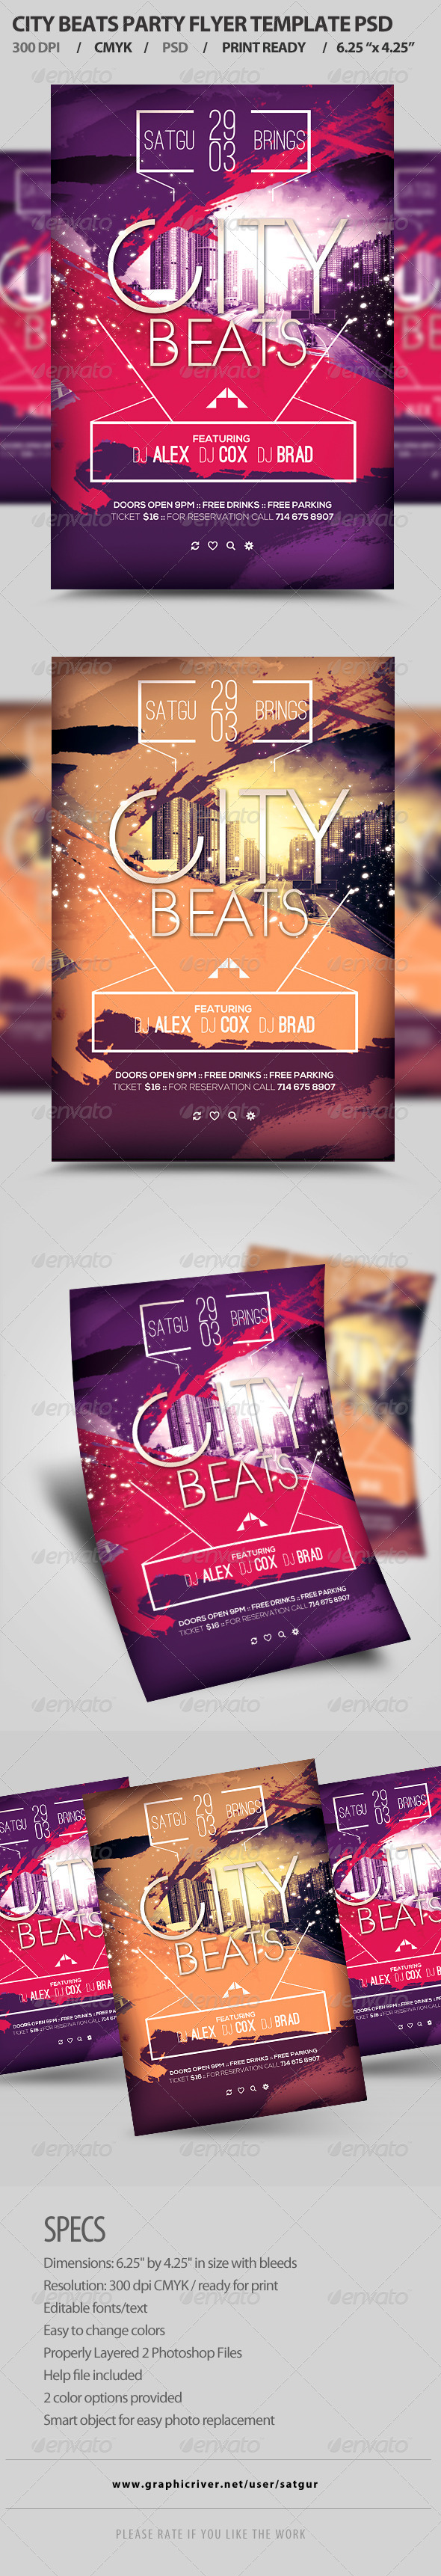 GraphicRiver City Beats Party Flyer Template PSD 8247150